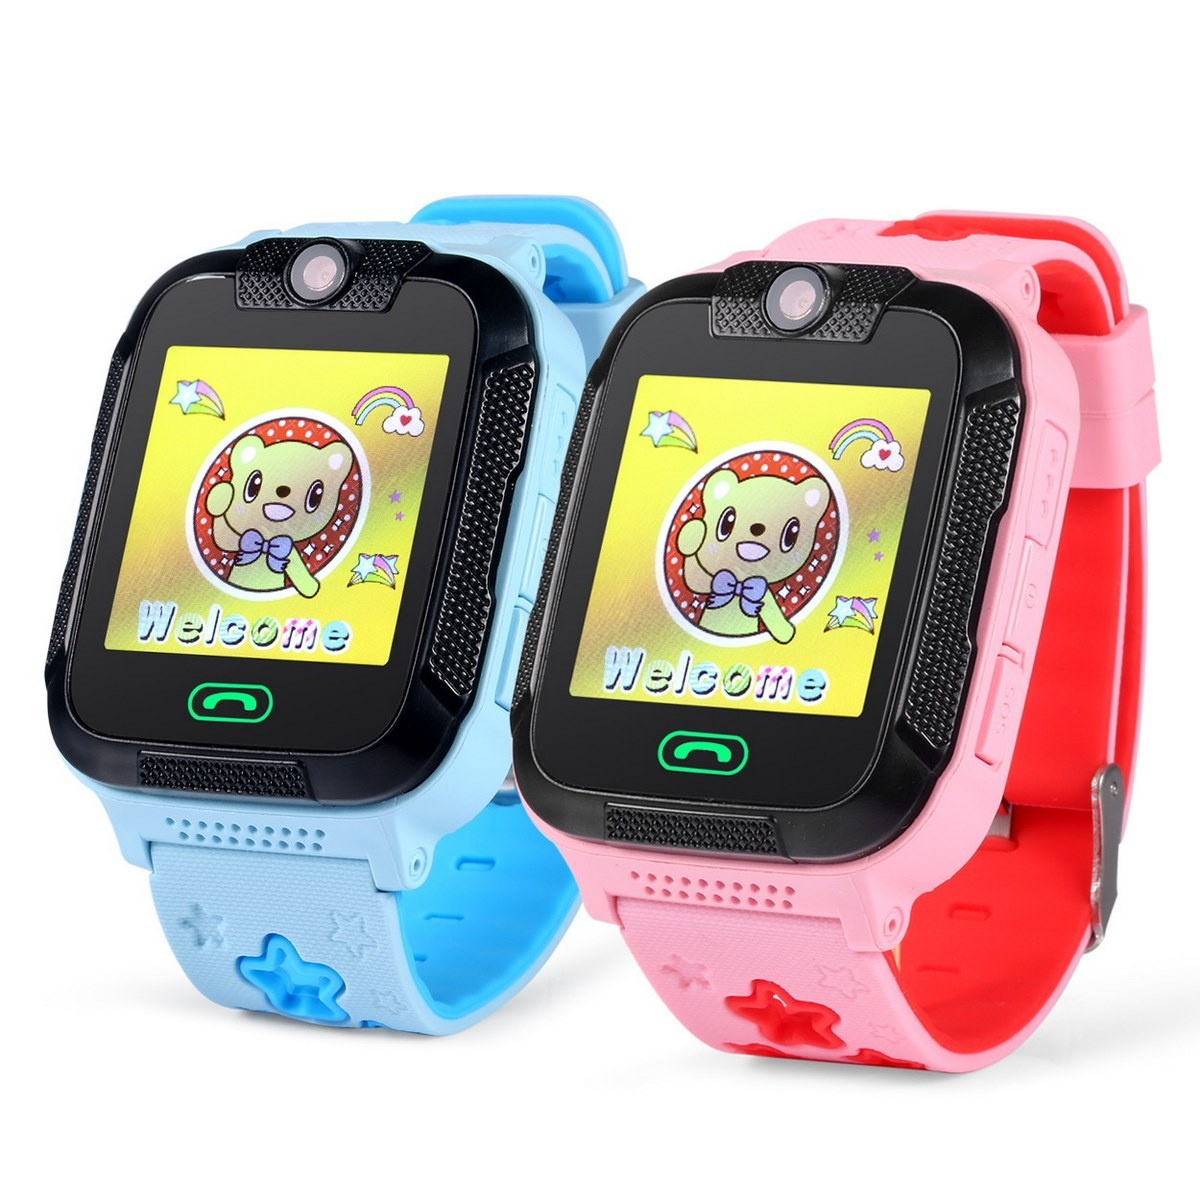 Часы Часы Smart Baby Watch GW2000 Android smart_baby_watch_gw2000_01.jpg